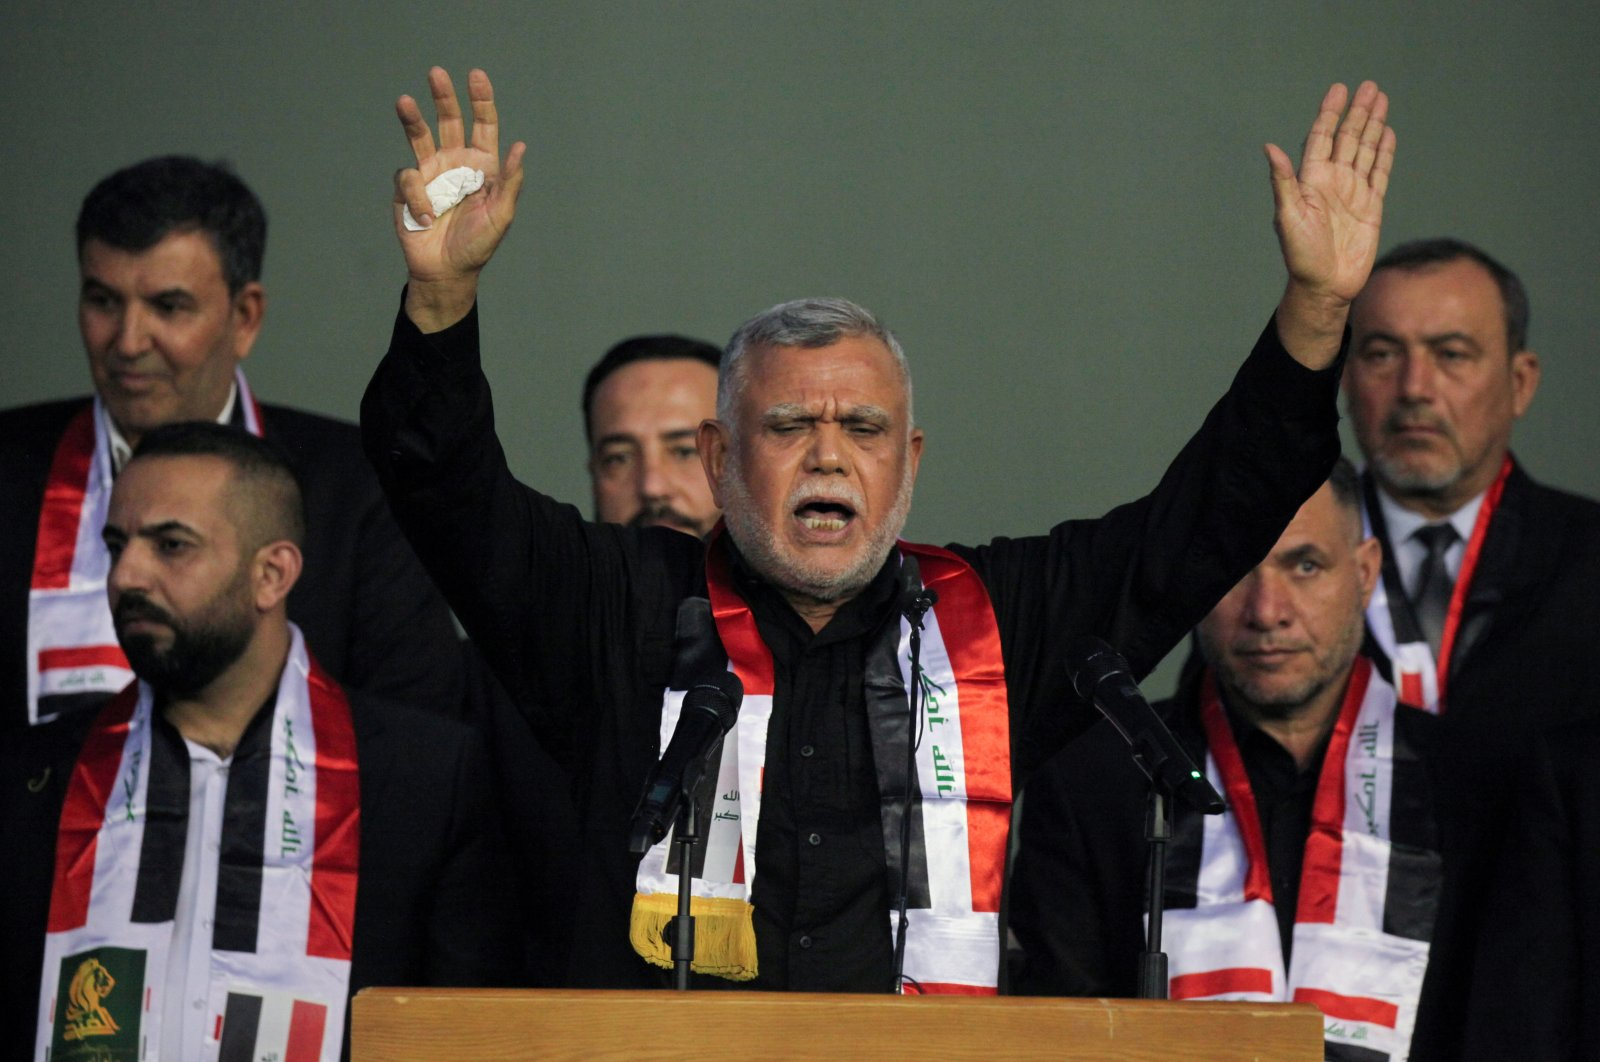 Hadi al-Amiri leader of the Badr Organisation, attends an election rally along with his Fatah bloc supporters, ahead of the parliamentary election in Baghdad, Iraq Oct. 5, 2021. (Reuters Photo)